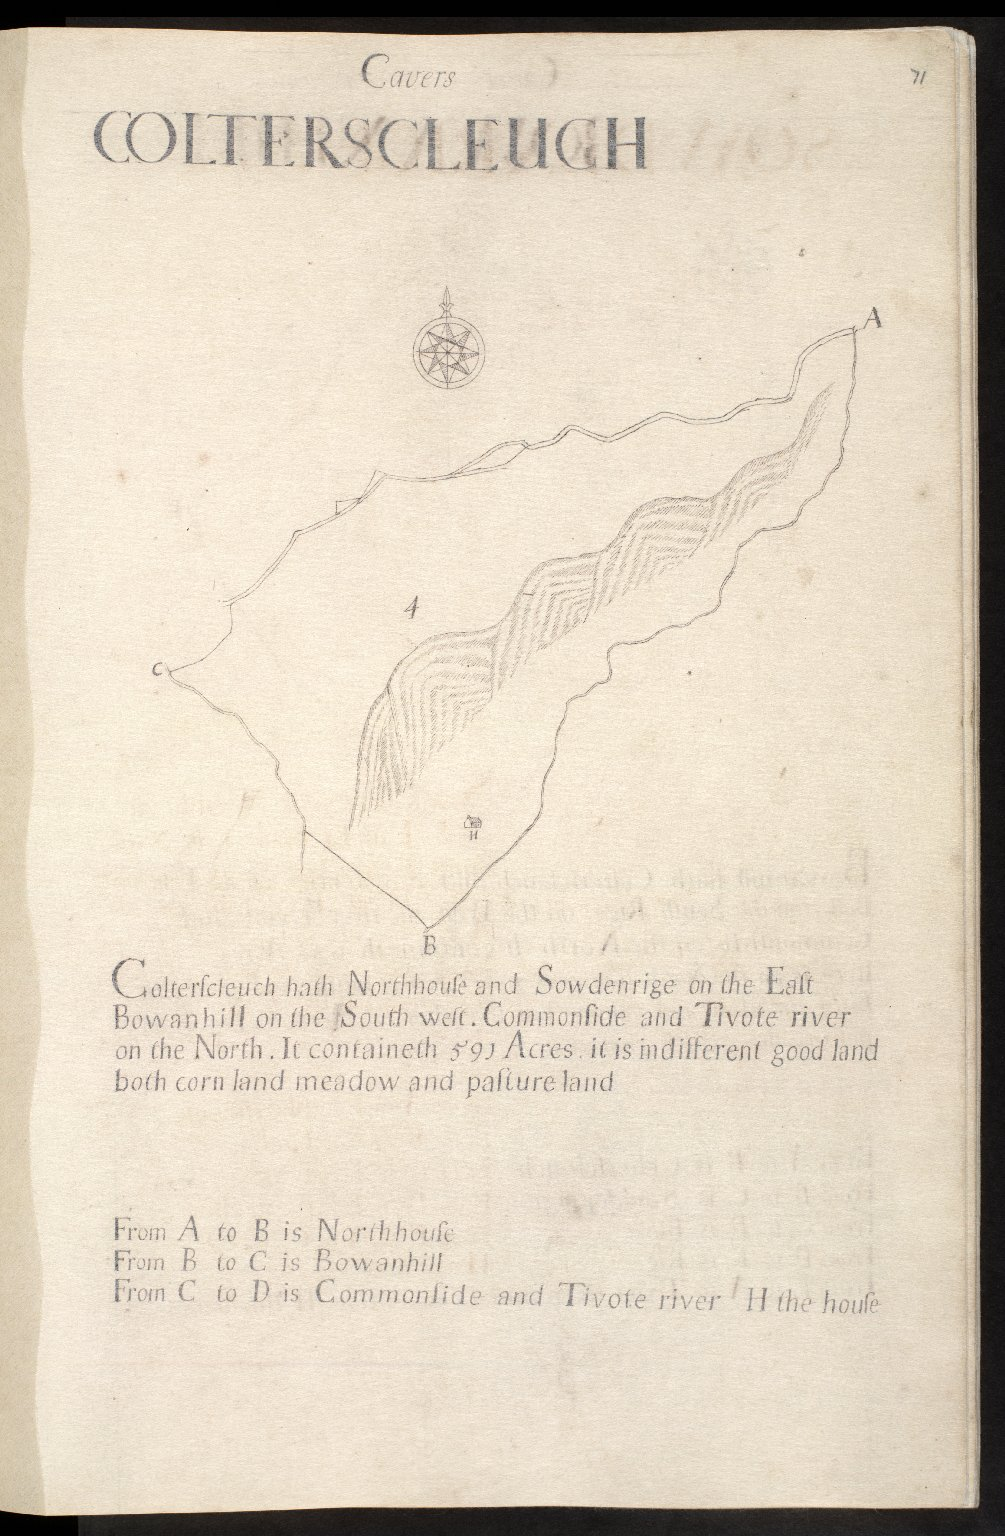 ['A Scale of 40 Chain or half A Mile', with scale bar and dividers. 'Not[e]. This Scale Serveth all the book unless there be Any Scale with with [sic] the mapp or in that leaf']. [1 of 1]